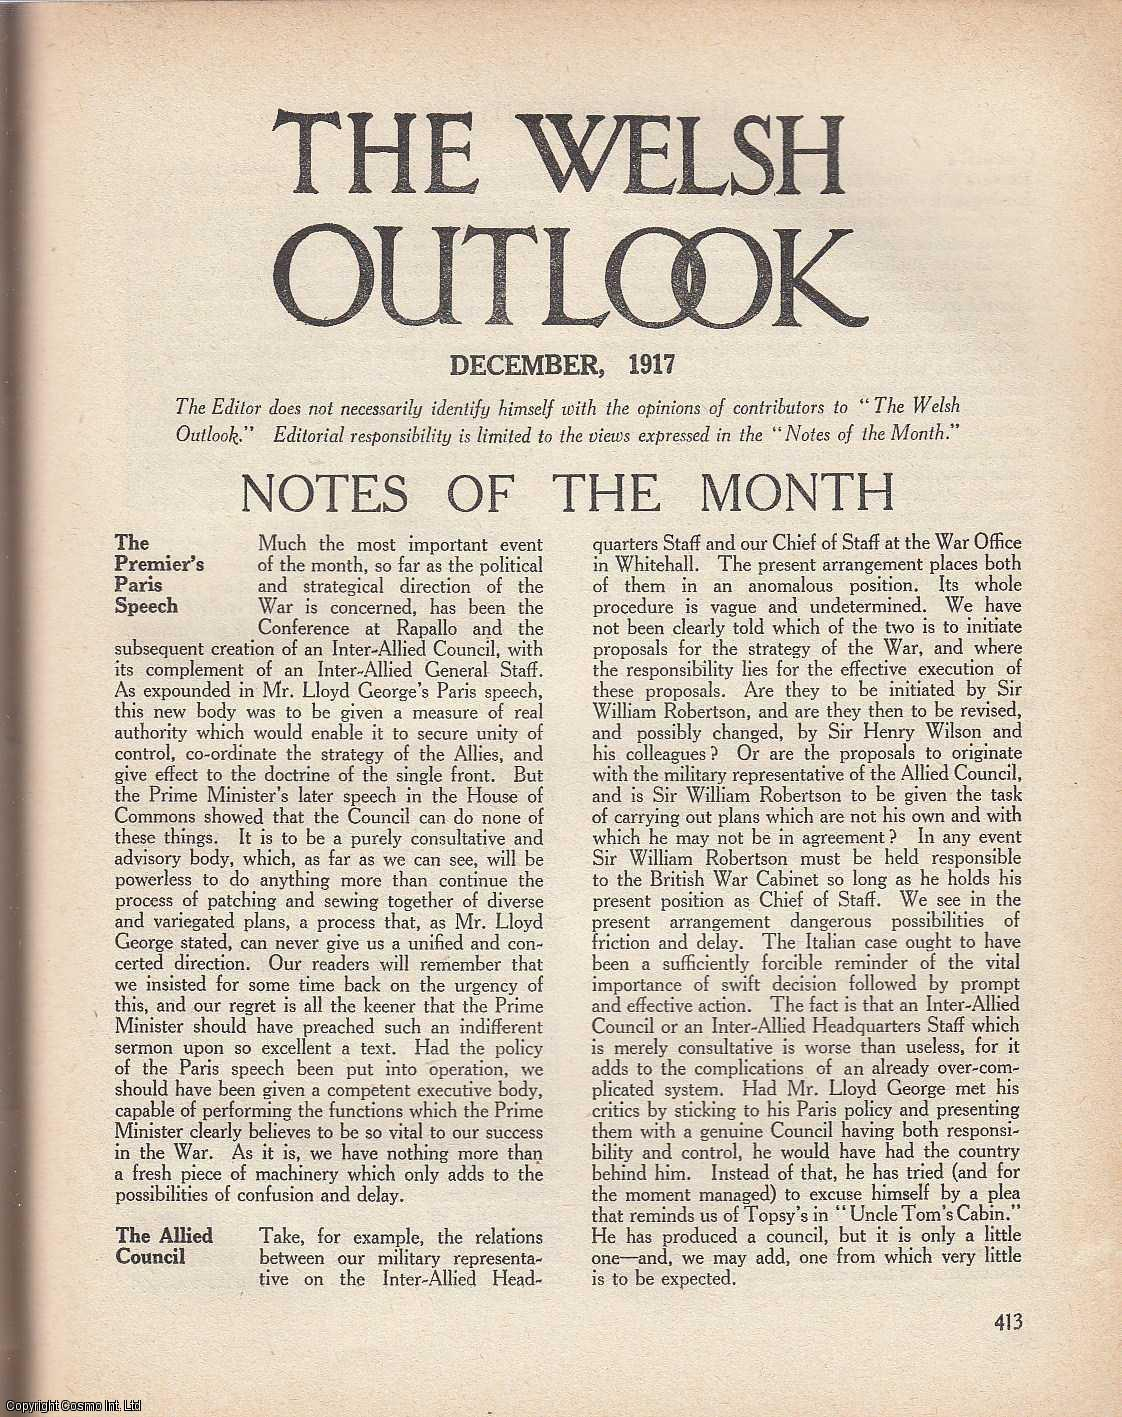 The Welsh Outlook. A Monthly Journal of National Social Progress. December, 1917. Contains; Labour and The Church - A Symposium by D. Emrys Evans; Sinn Fein: The Recent Growth of The Movement; The New Co-Operative Outlook by T.W. Allen; Sir John Prichard-Jones by Vincent Evans; Industrial Unrest report: Criticism by a Cardiff Employer by T.E. Watson; The Prime Minister's Temperance Proposals by Lewis Williams; The Church and The Drink Traffic by J.T. Rhys; Banker, Financier, and Profiteer by Victor Branford; The Welsh President by R.G.B.; Welsh Disendowment: The Effect of The War by J. St. Davids; Labour Problems: Conclusion; The Army and Religion by John David Jones; Shakespearean Drama: Revival in Wales by H.M.V., Thomas Jones (Editor)